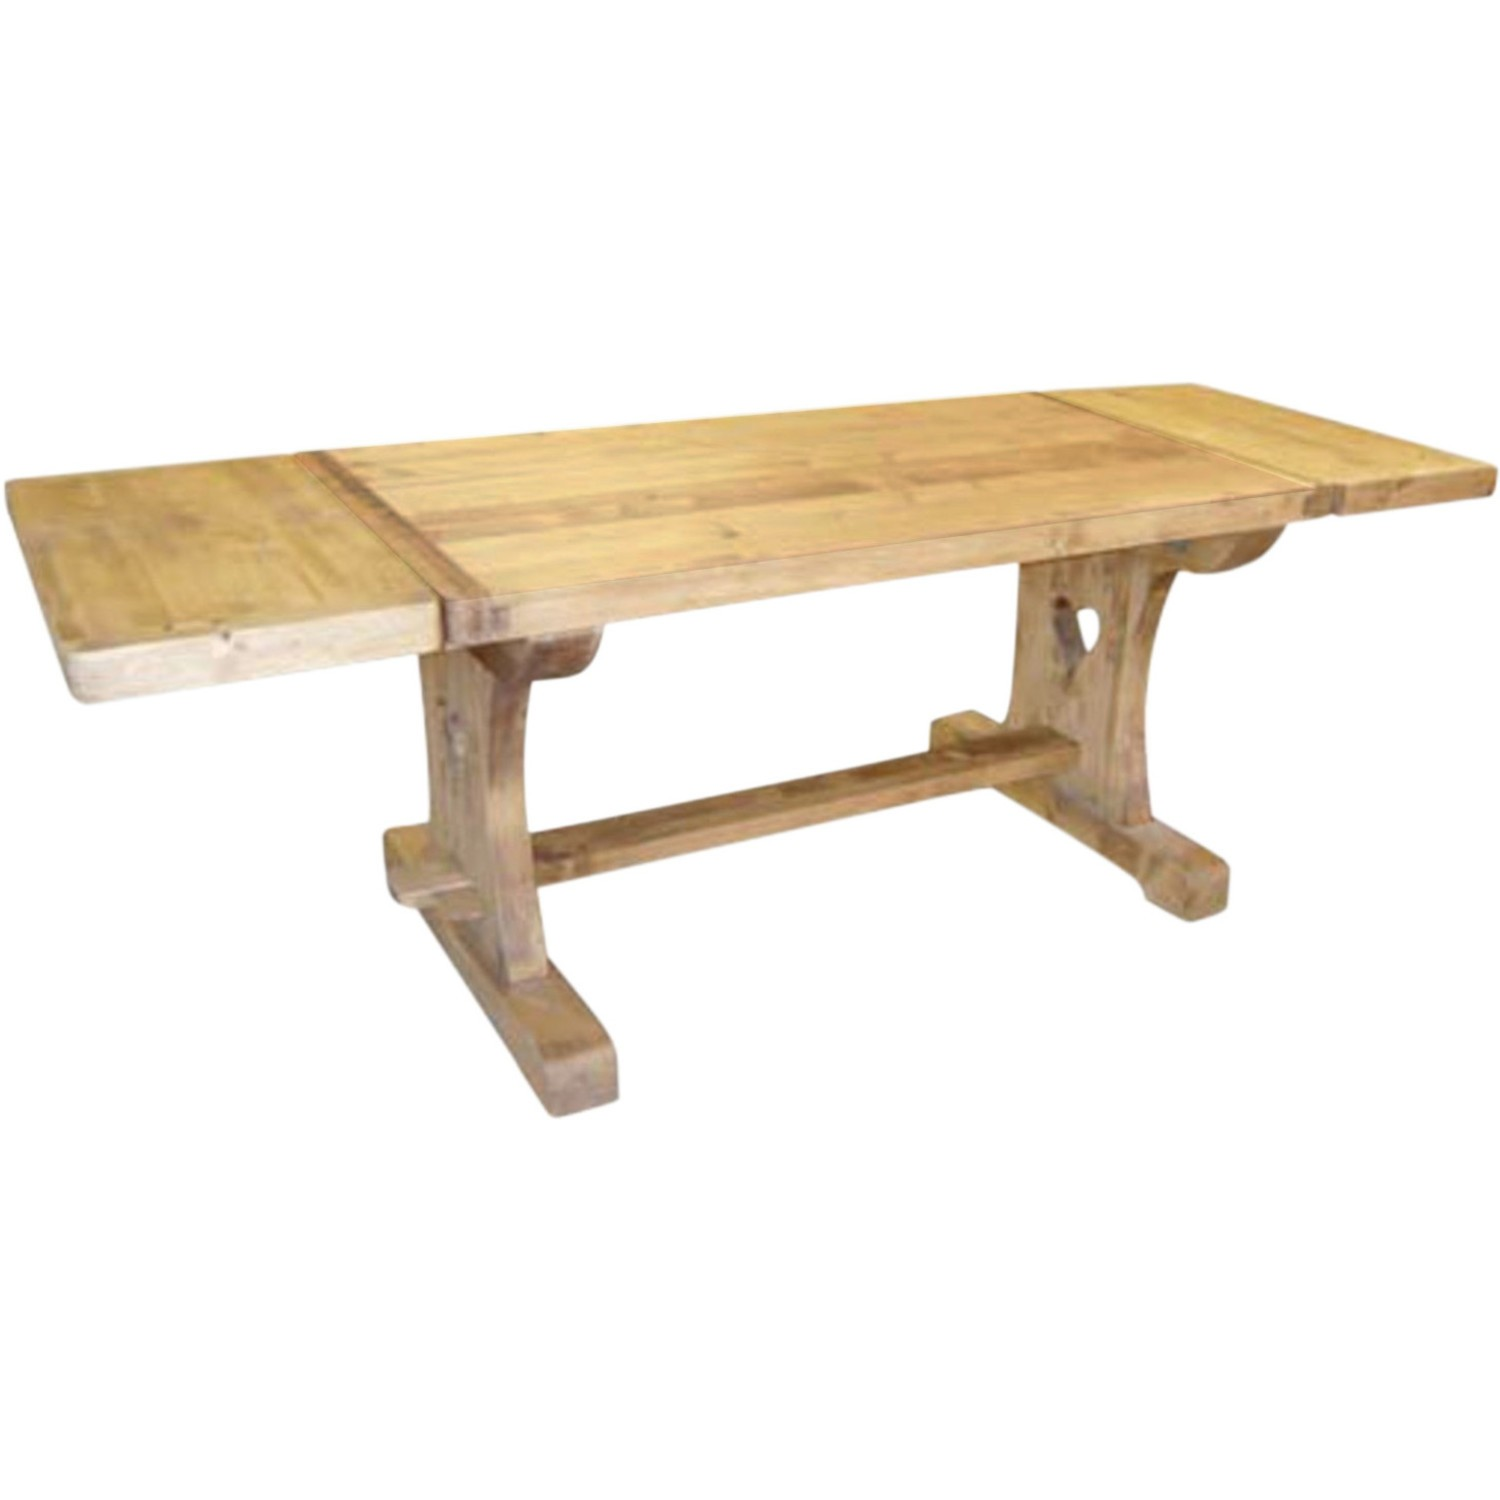 Table Monastere Coeur Avec 2 Allonges 40 Cm